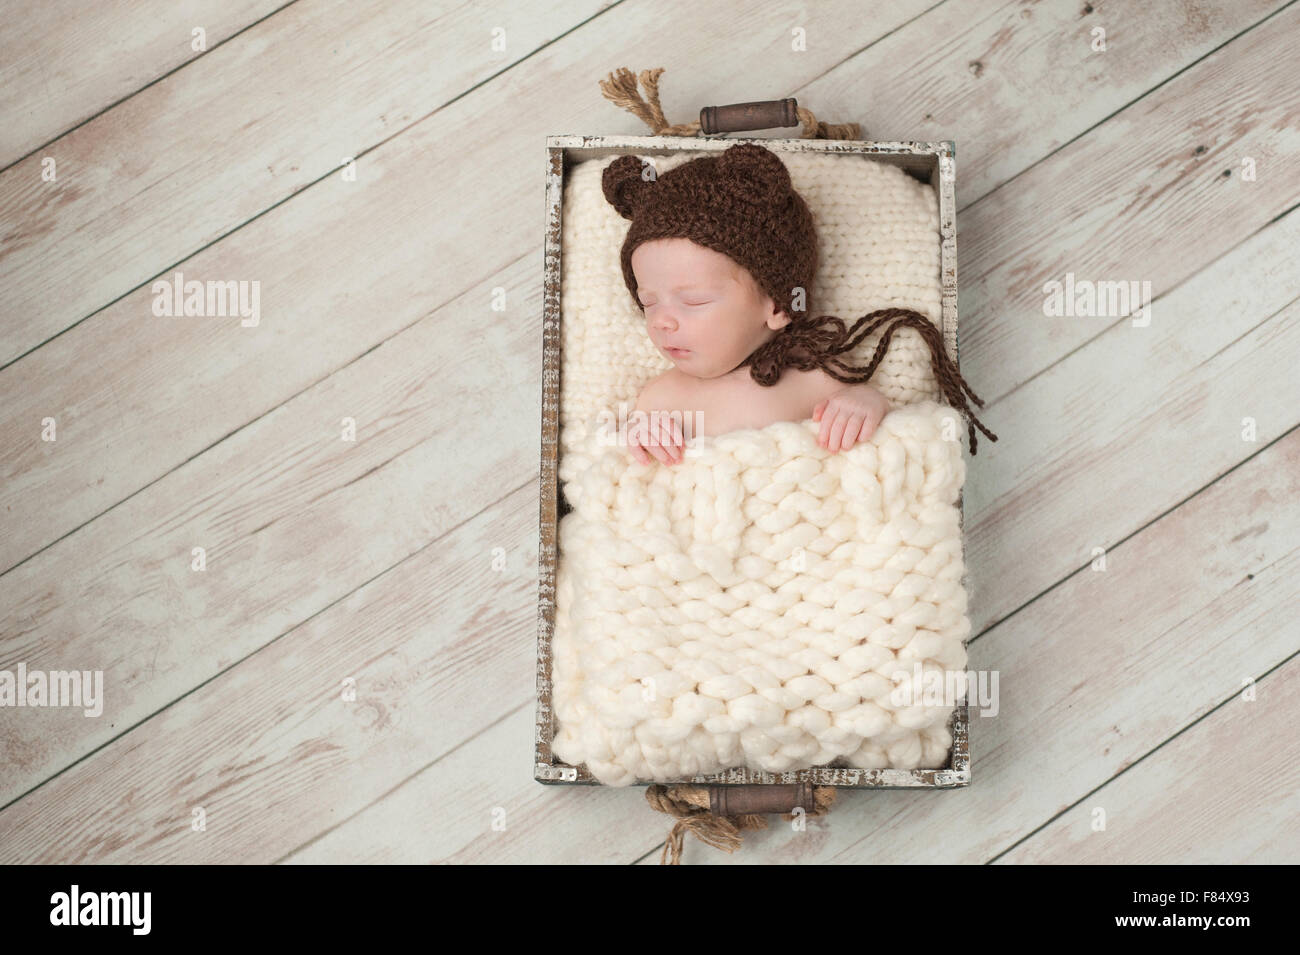 Two week old newborn baby boy wearing a brown, crocheted, bear bonnet. He  is sleeping in a rustic wooden crate. Shot in the stud f8a4d382987